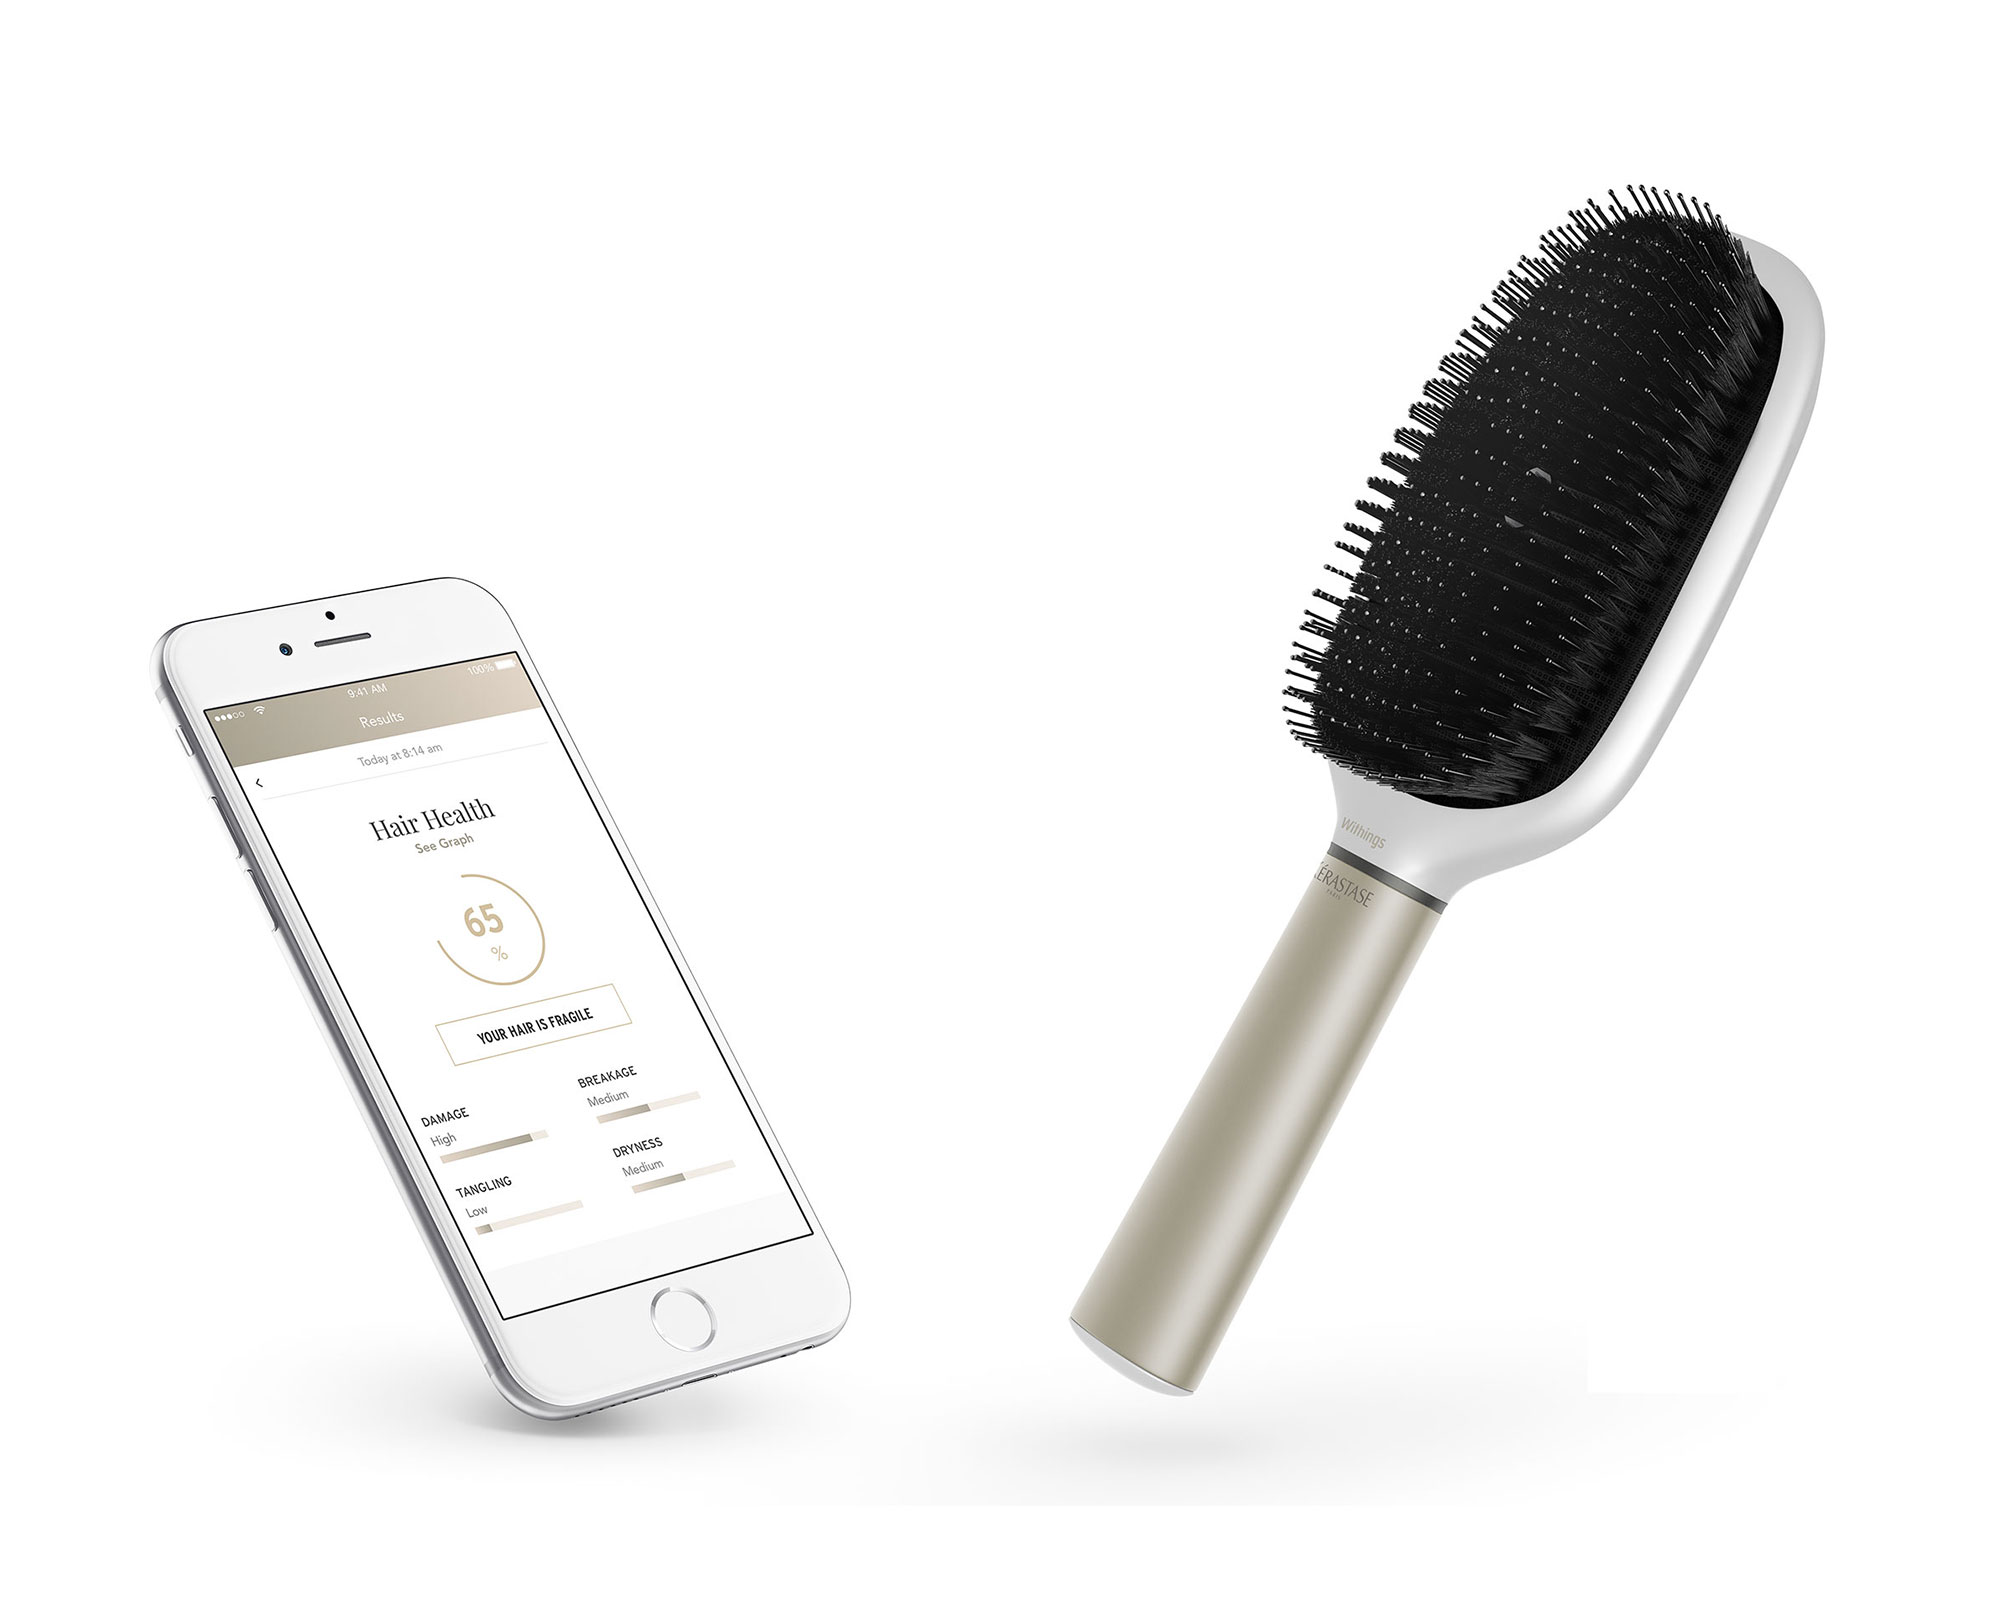 kerastase-smart-hair-brush-loreal-2000px_2017_01.jpg